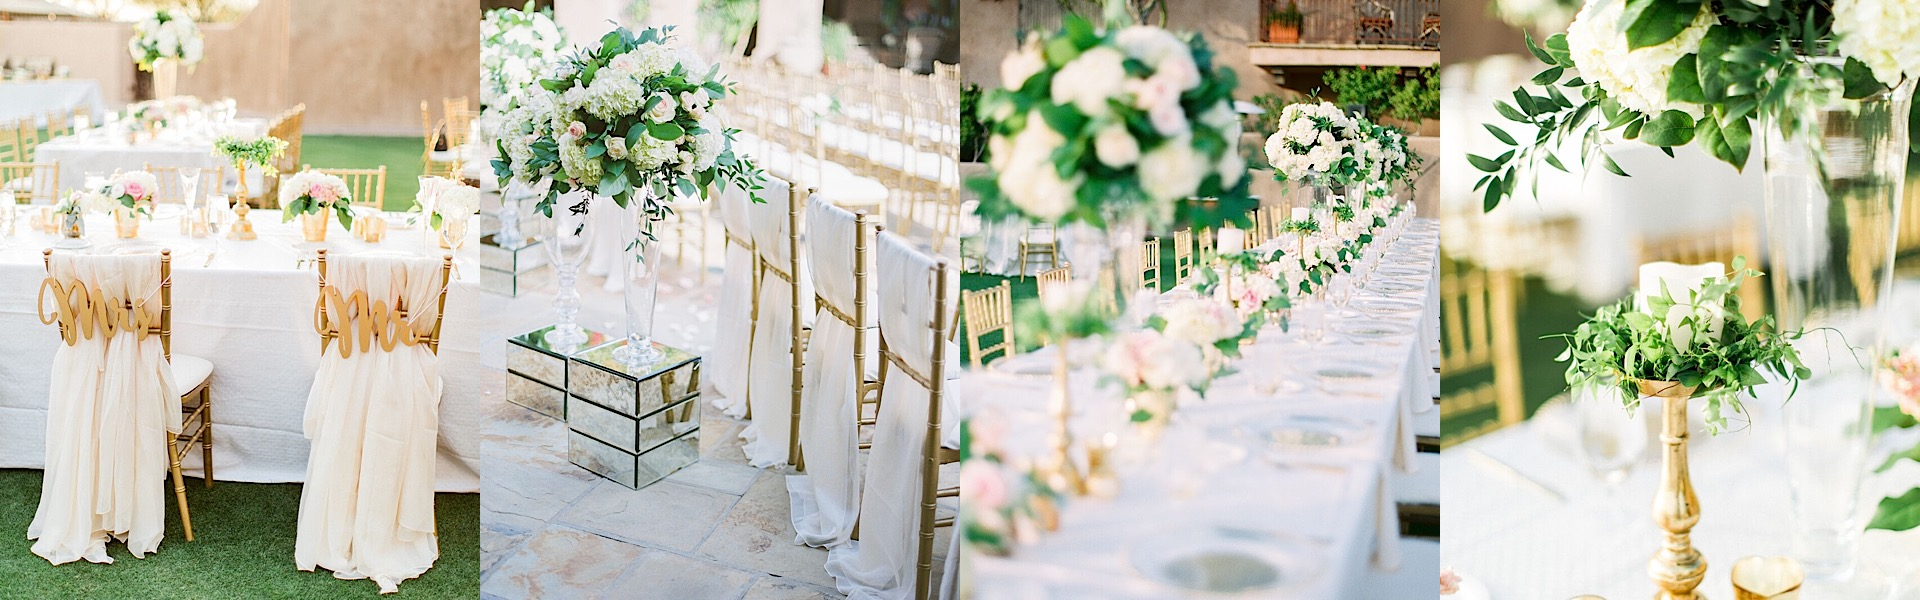 Stunning Arizona Wedding with Gold Details - MODwedding